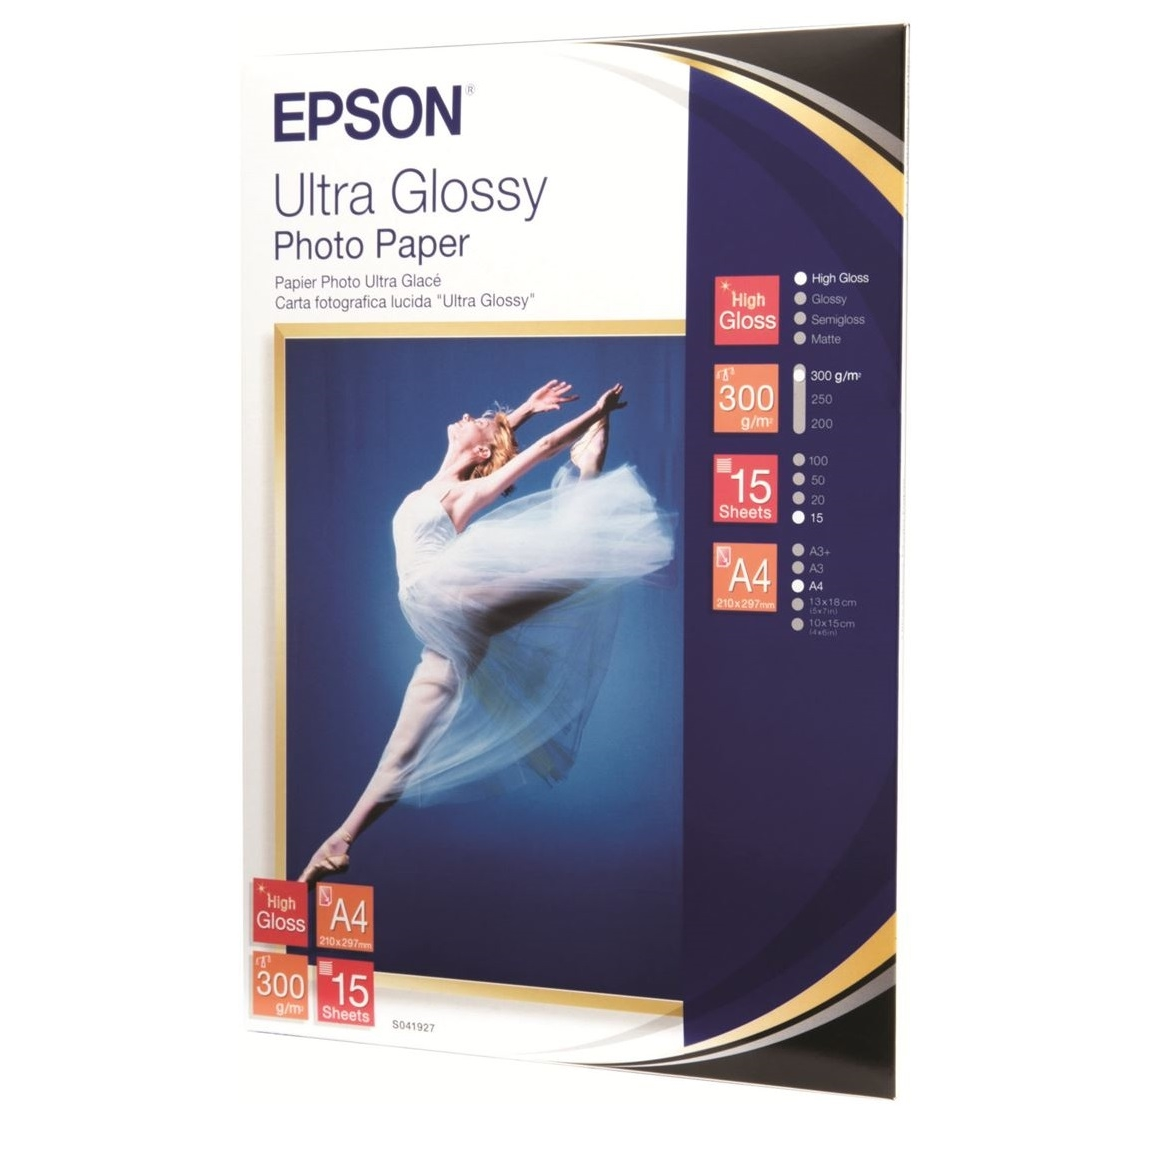 Original Epson S041927 255gsm A4 Photo Paper - 15 Sheets (C13S041927)